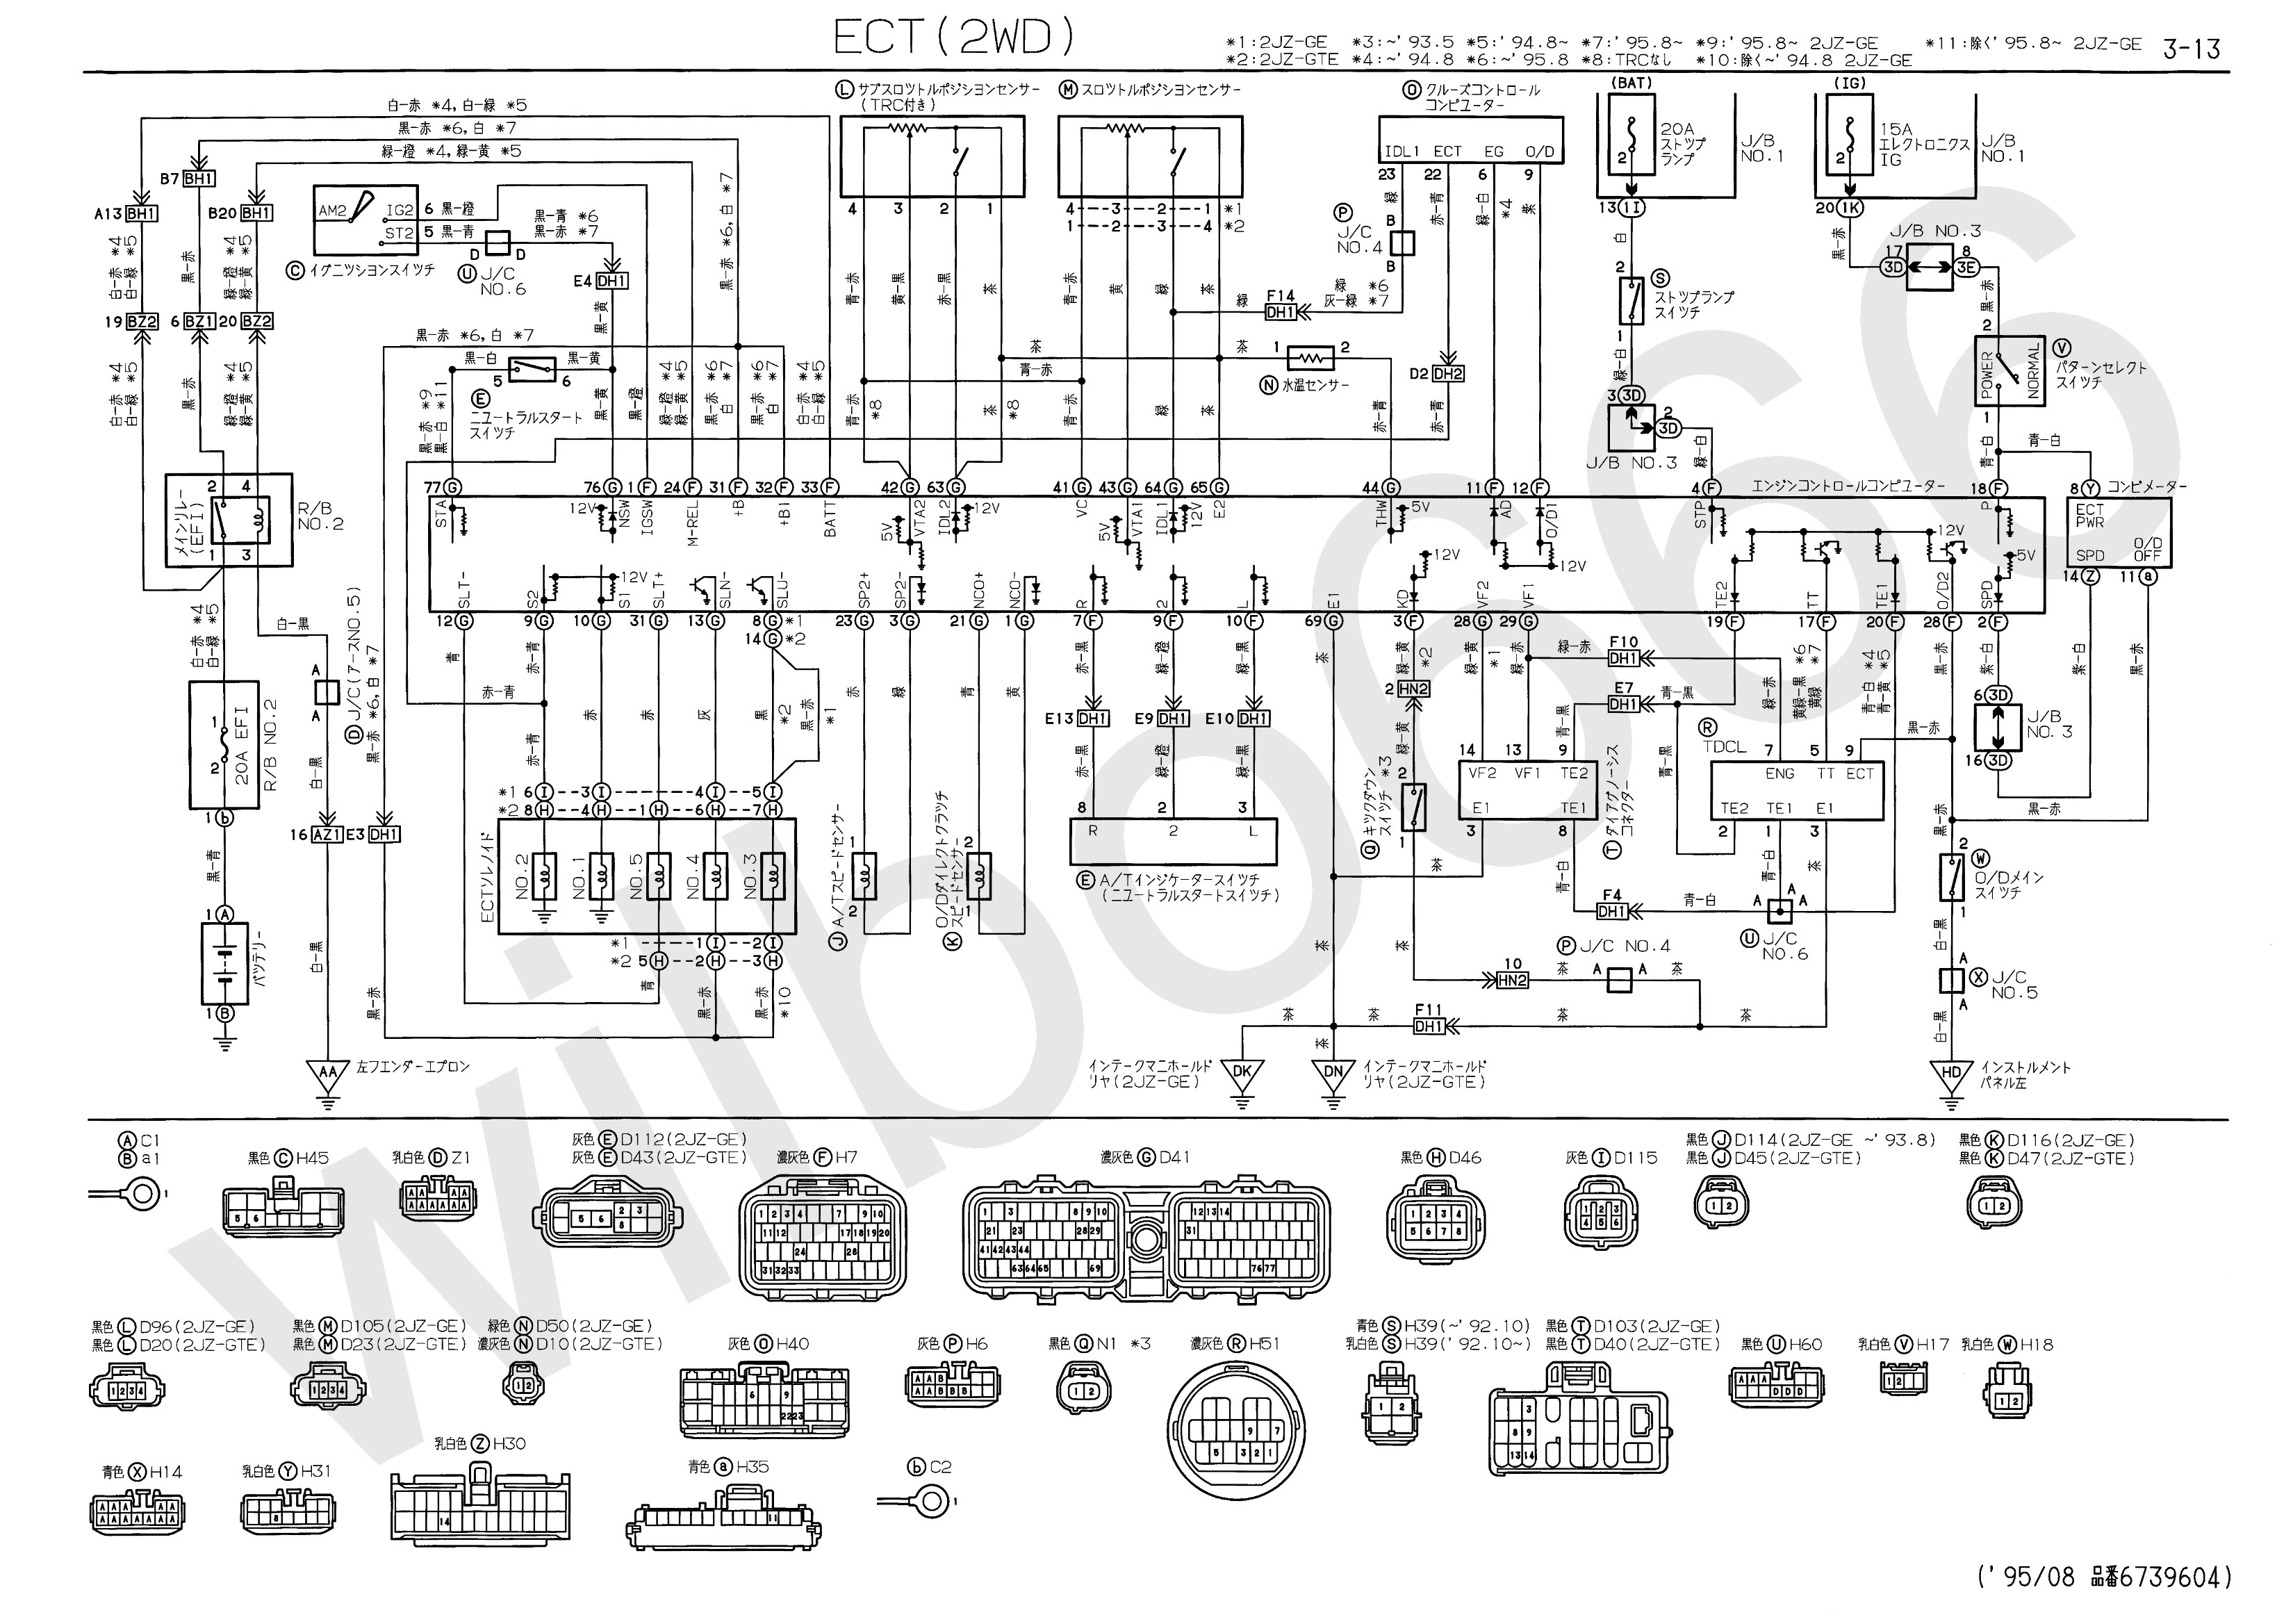 m37 alternator wiring diagram 2012 dodge challenger fuse box    wiring       diagram    database  2012 dodge challenger fuse box    wiring       diagram    database